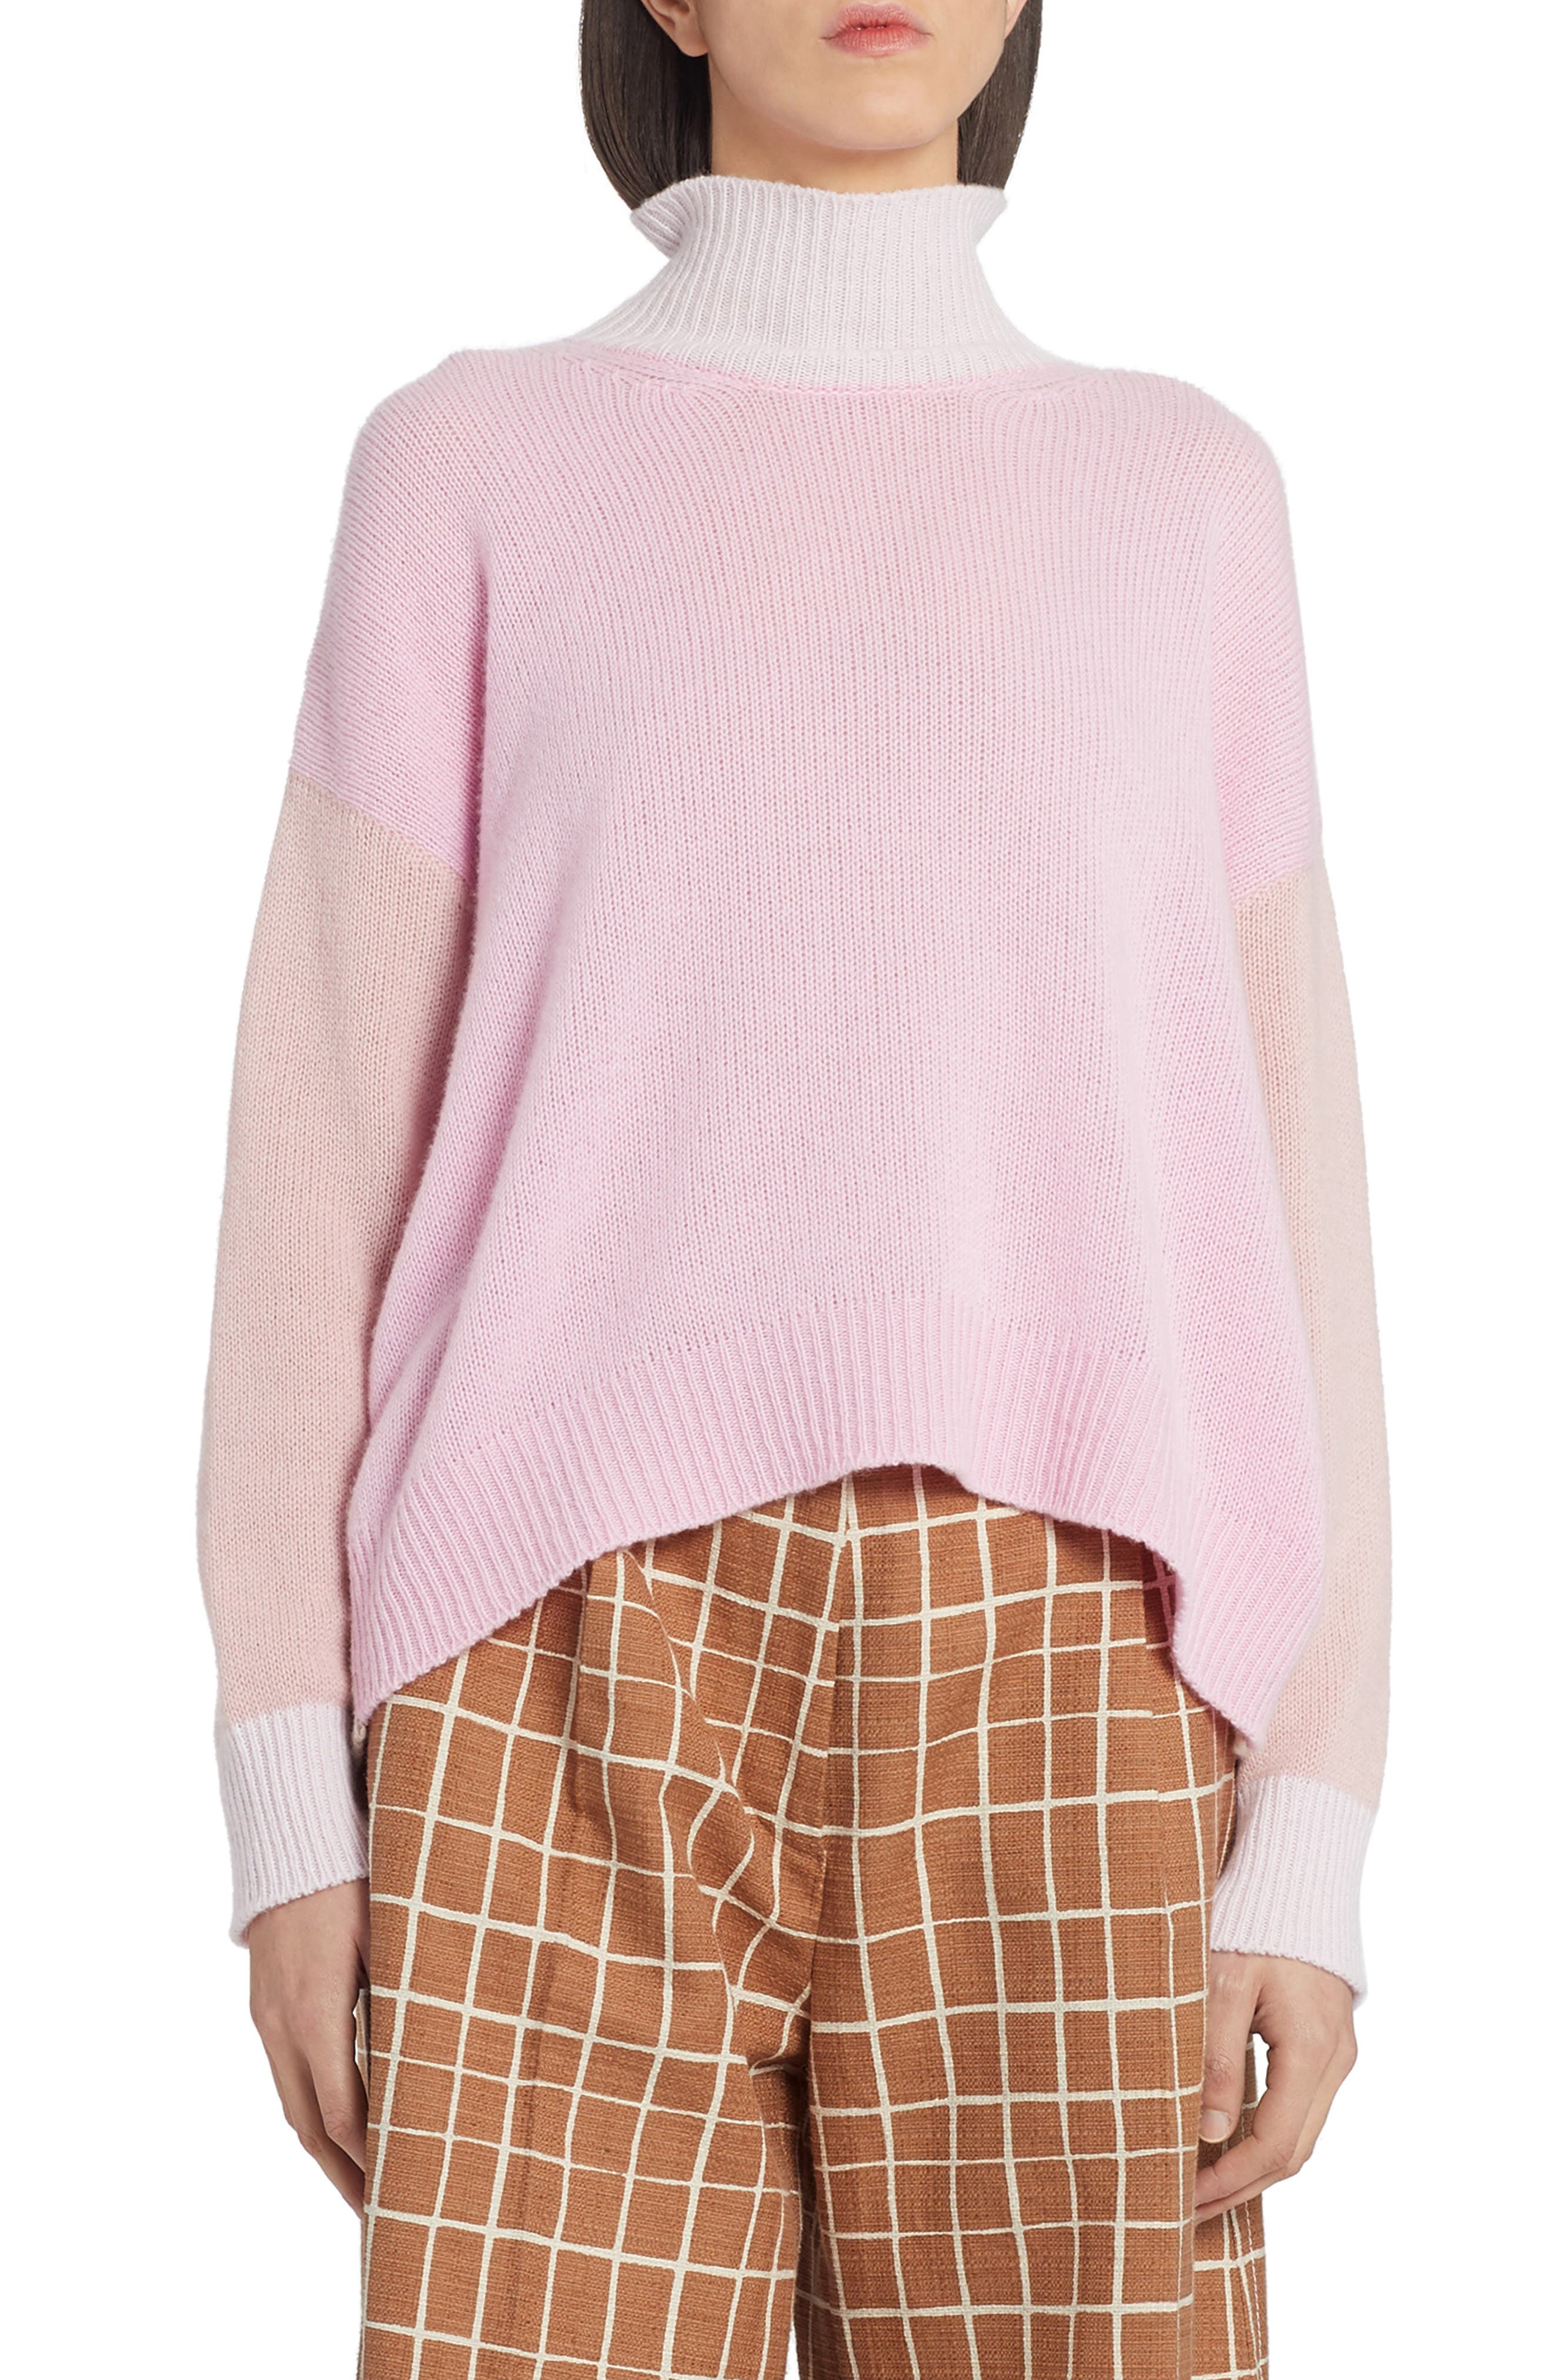 A palette of pale pinks and soft cream gives this cozy cashmere sweater the sweetest look. Style Name: Marni Colorblock Cashmere Turtleneck Sweater. Style Number: 6073140. Available in stores.